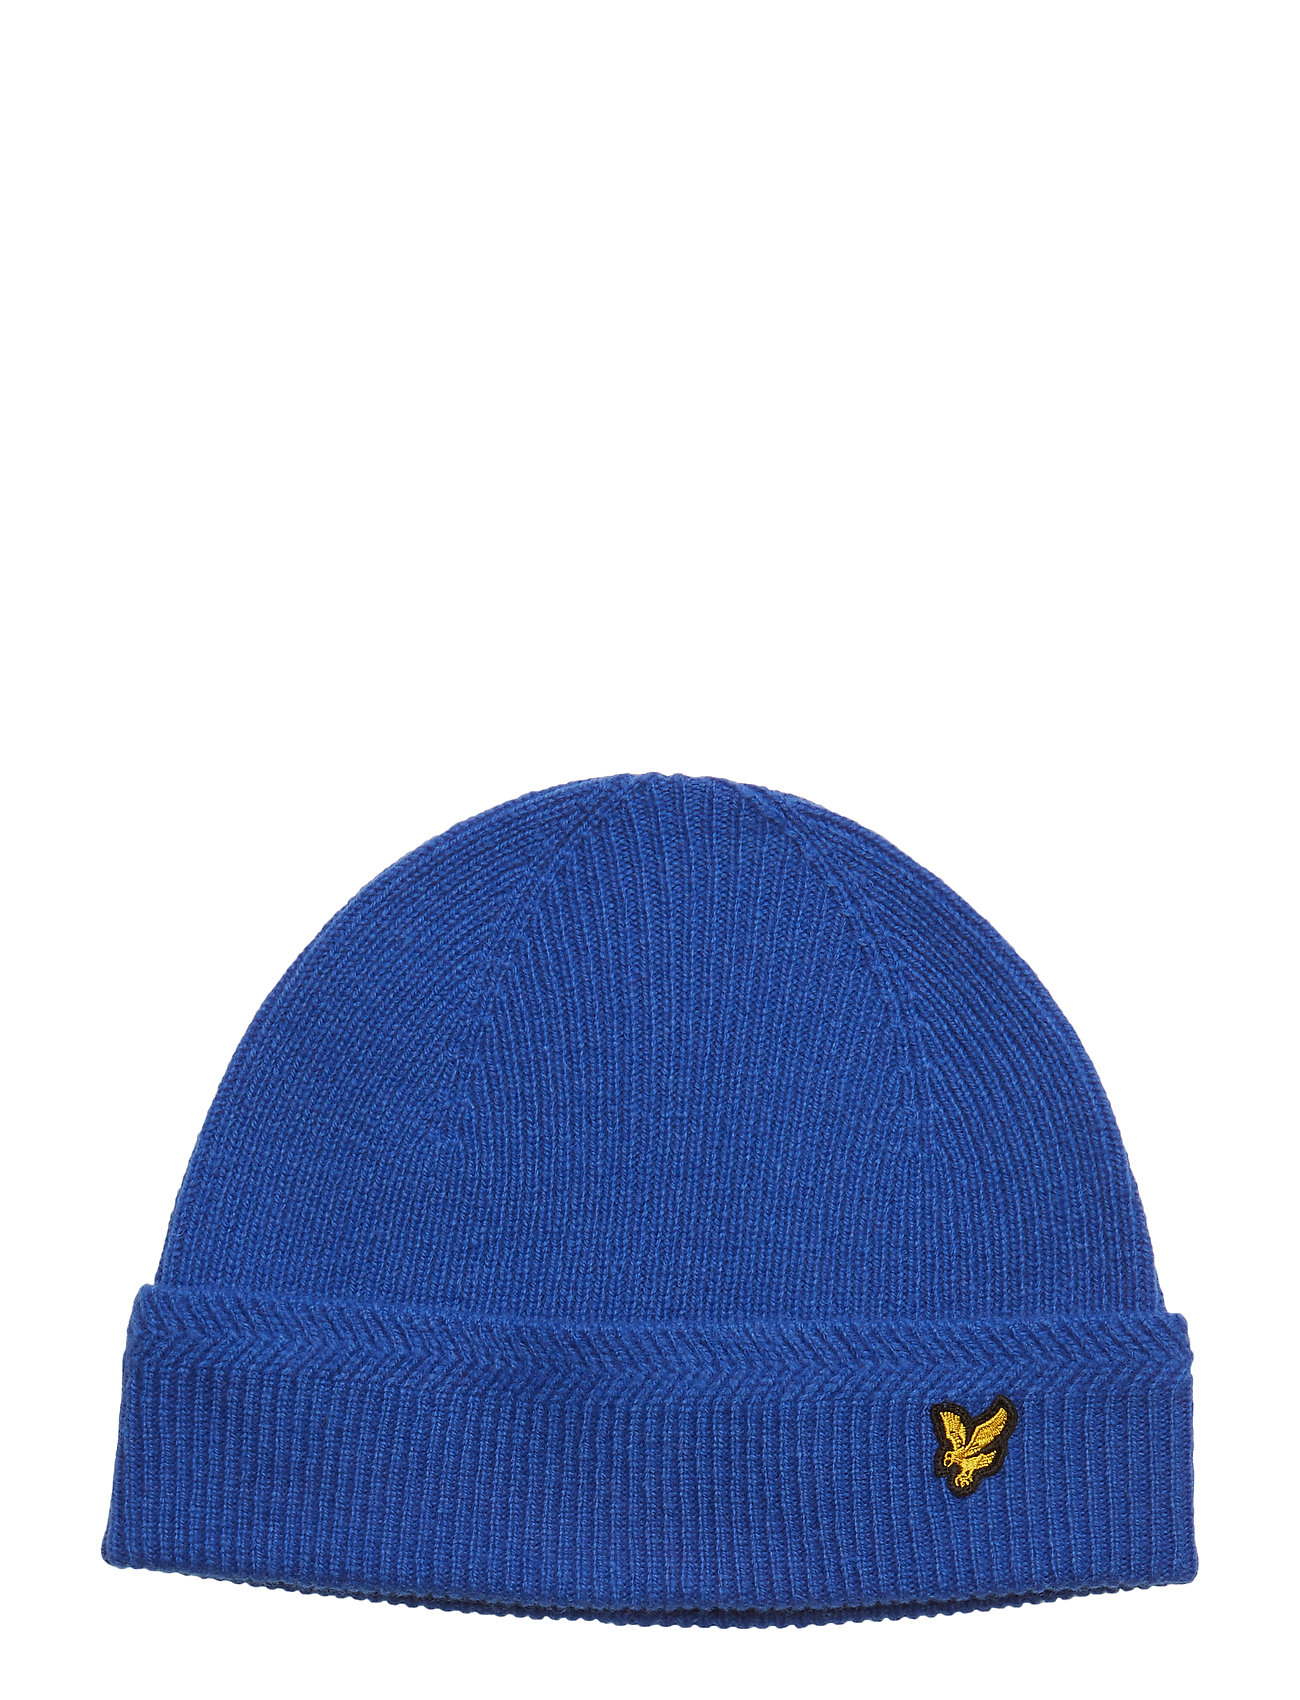 Lyle & Scott Racked rib beanie